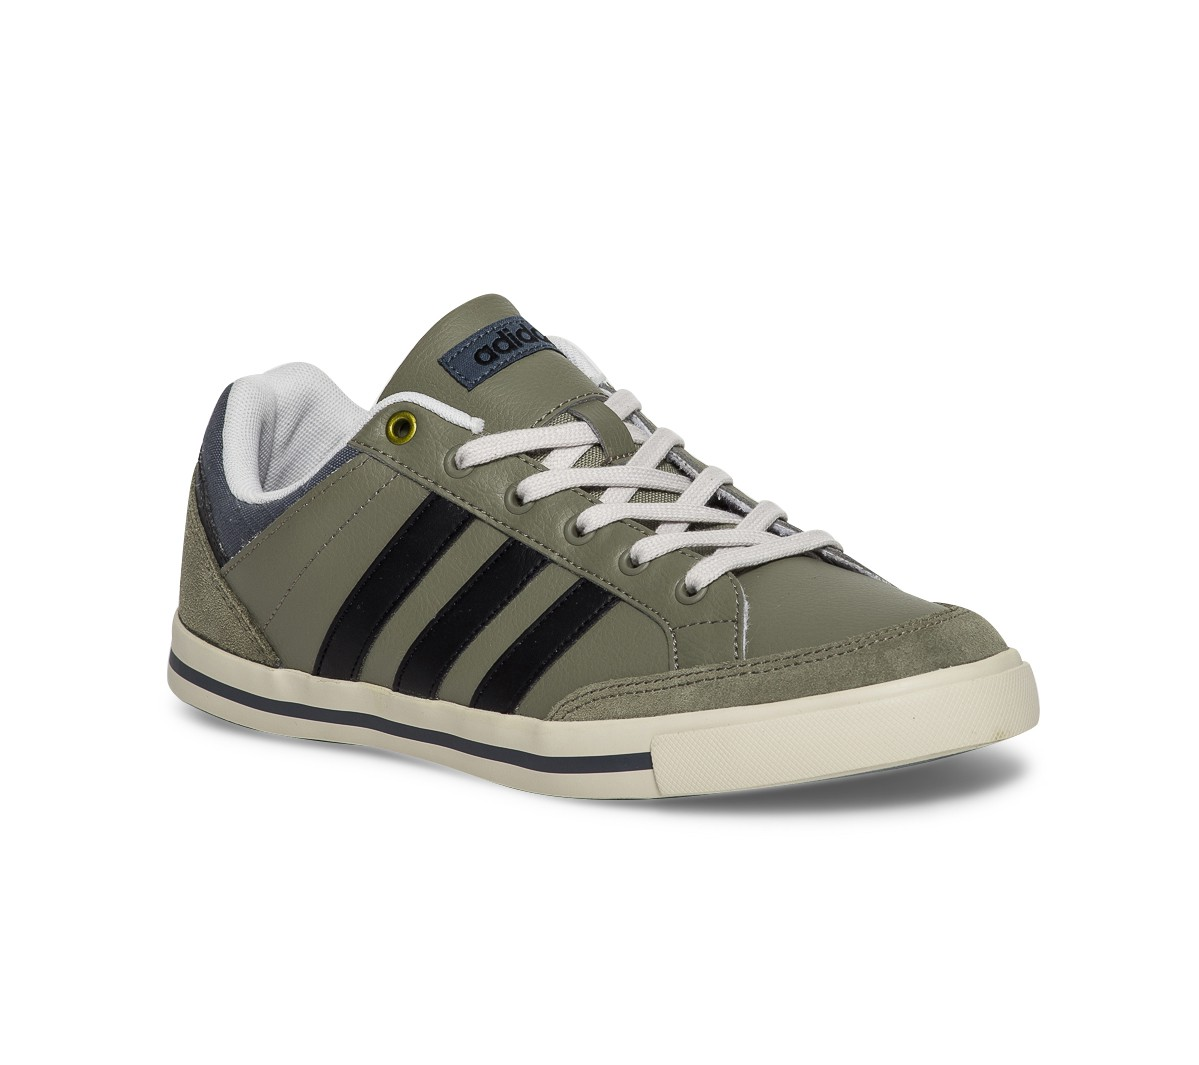 100% Authentique adidas basket cuir Outlet en ligne